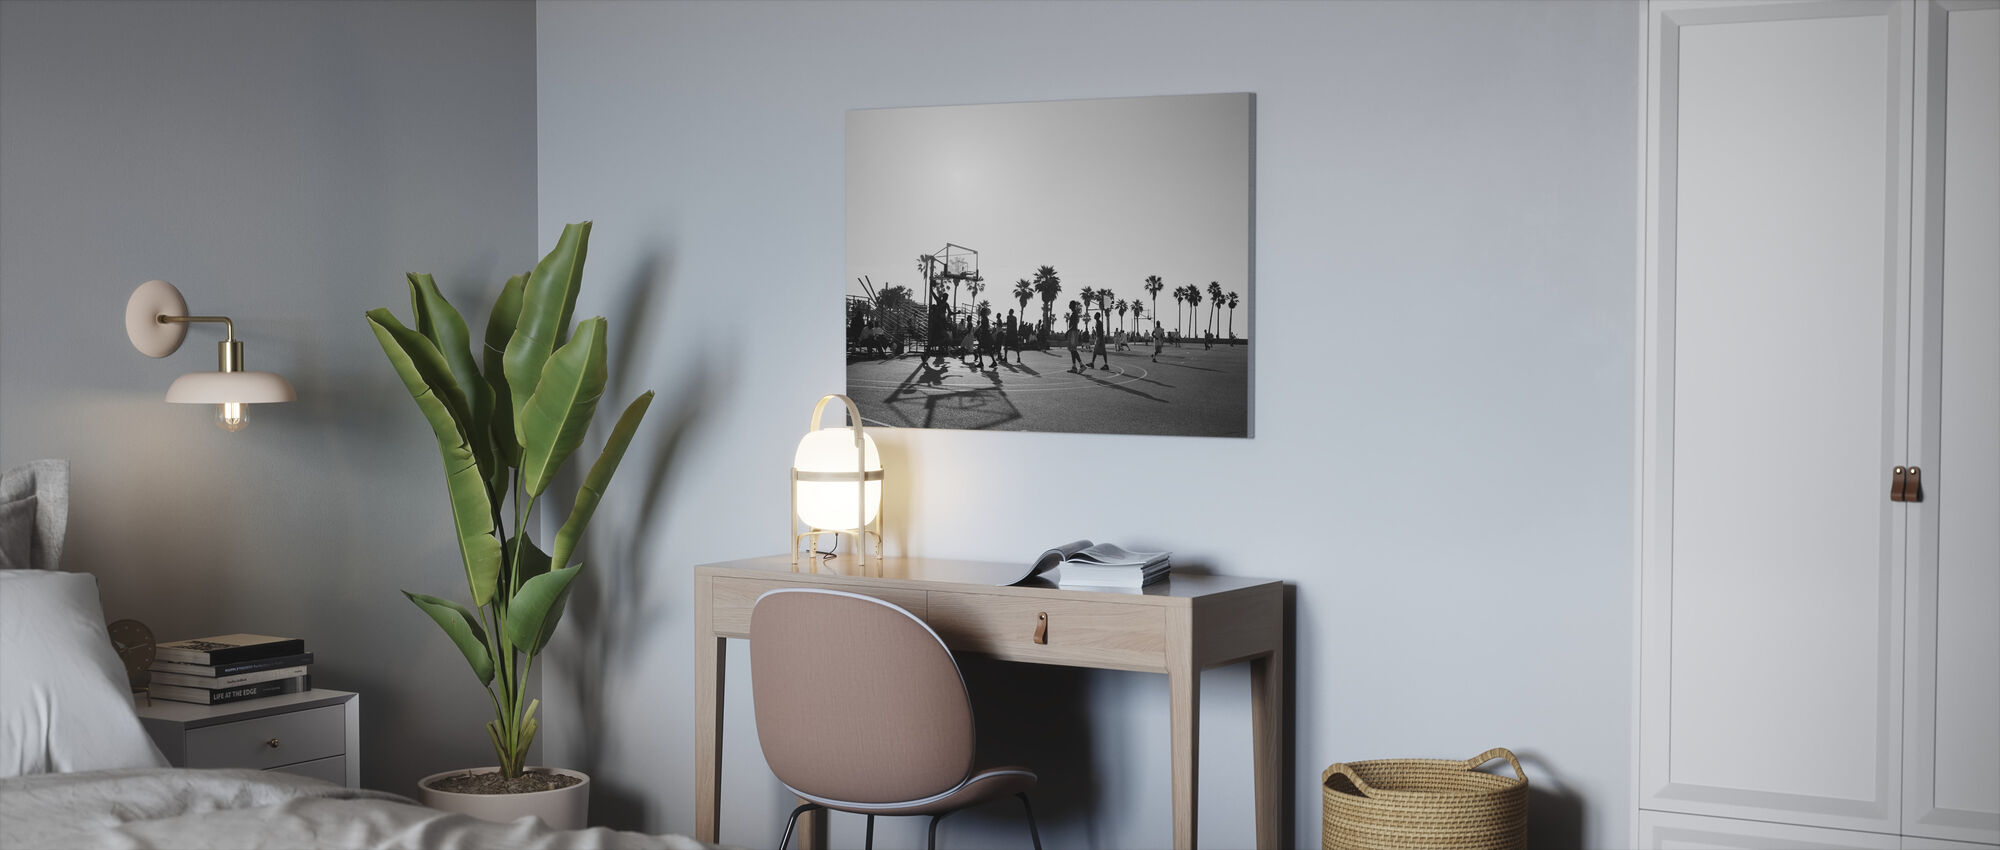 Basketball in the Streets of Los Angeles, California - Canvas print - Office